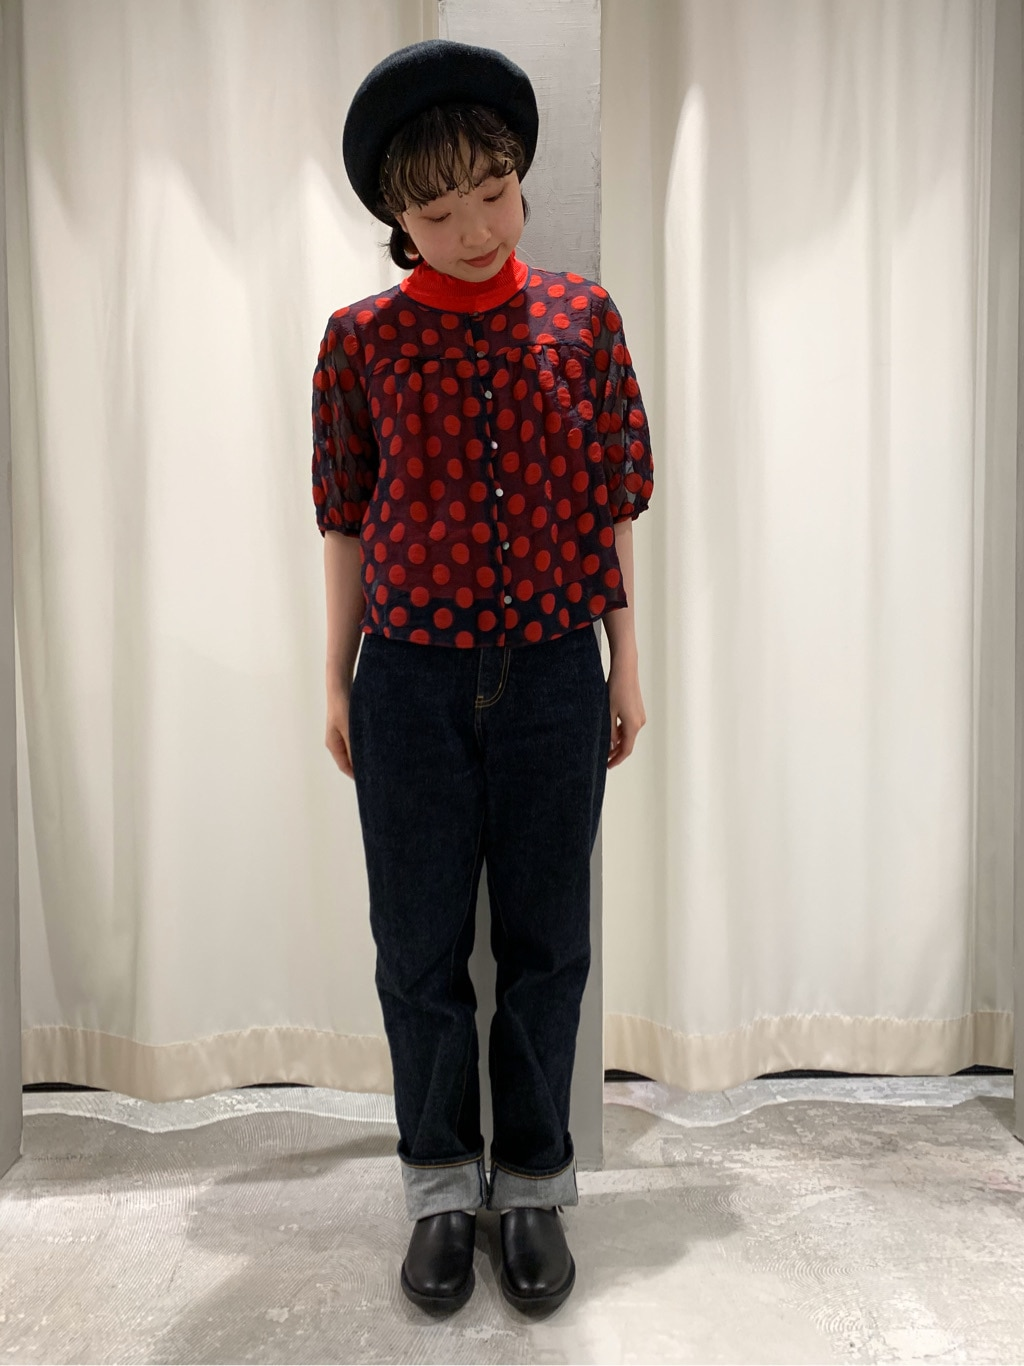 AMB SHOP CHILD WOMAN CHILD WOMAN , PAR ICI ルミネ横浜 身長:158cm 2020.07.01